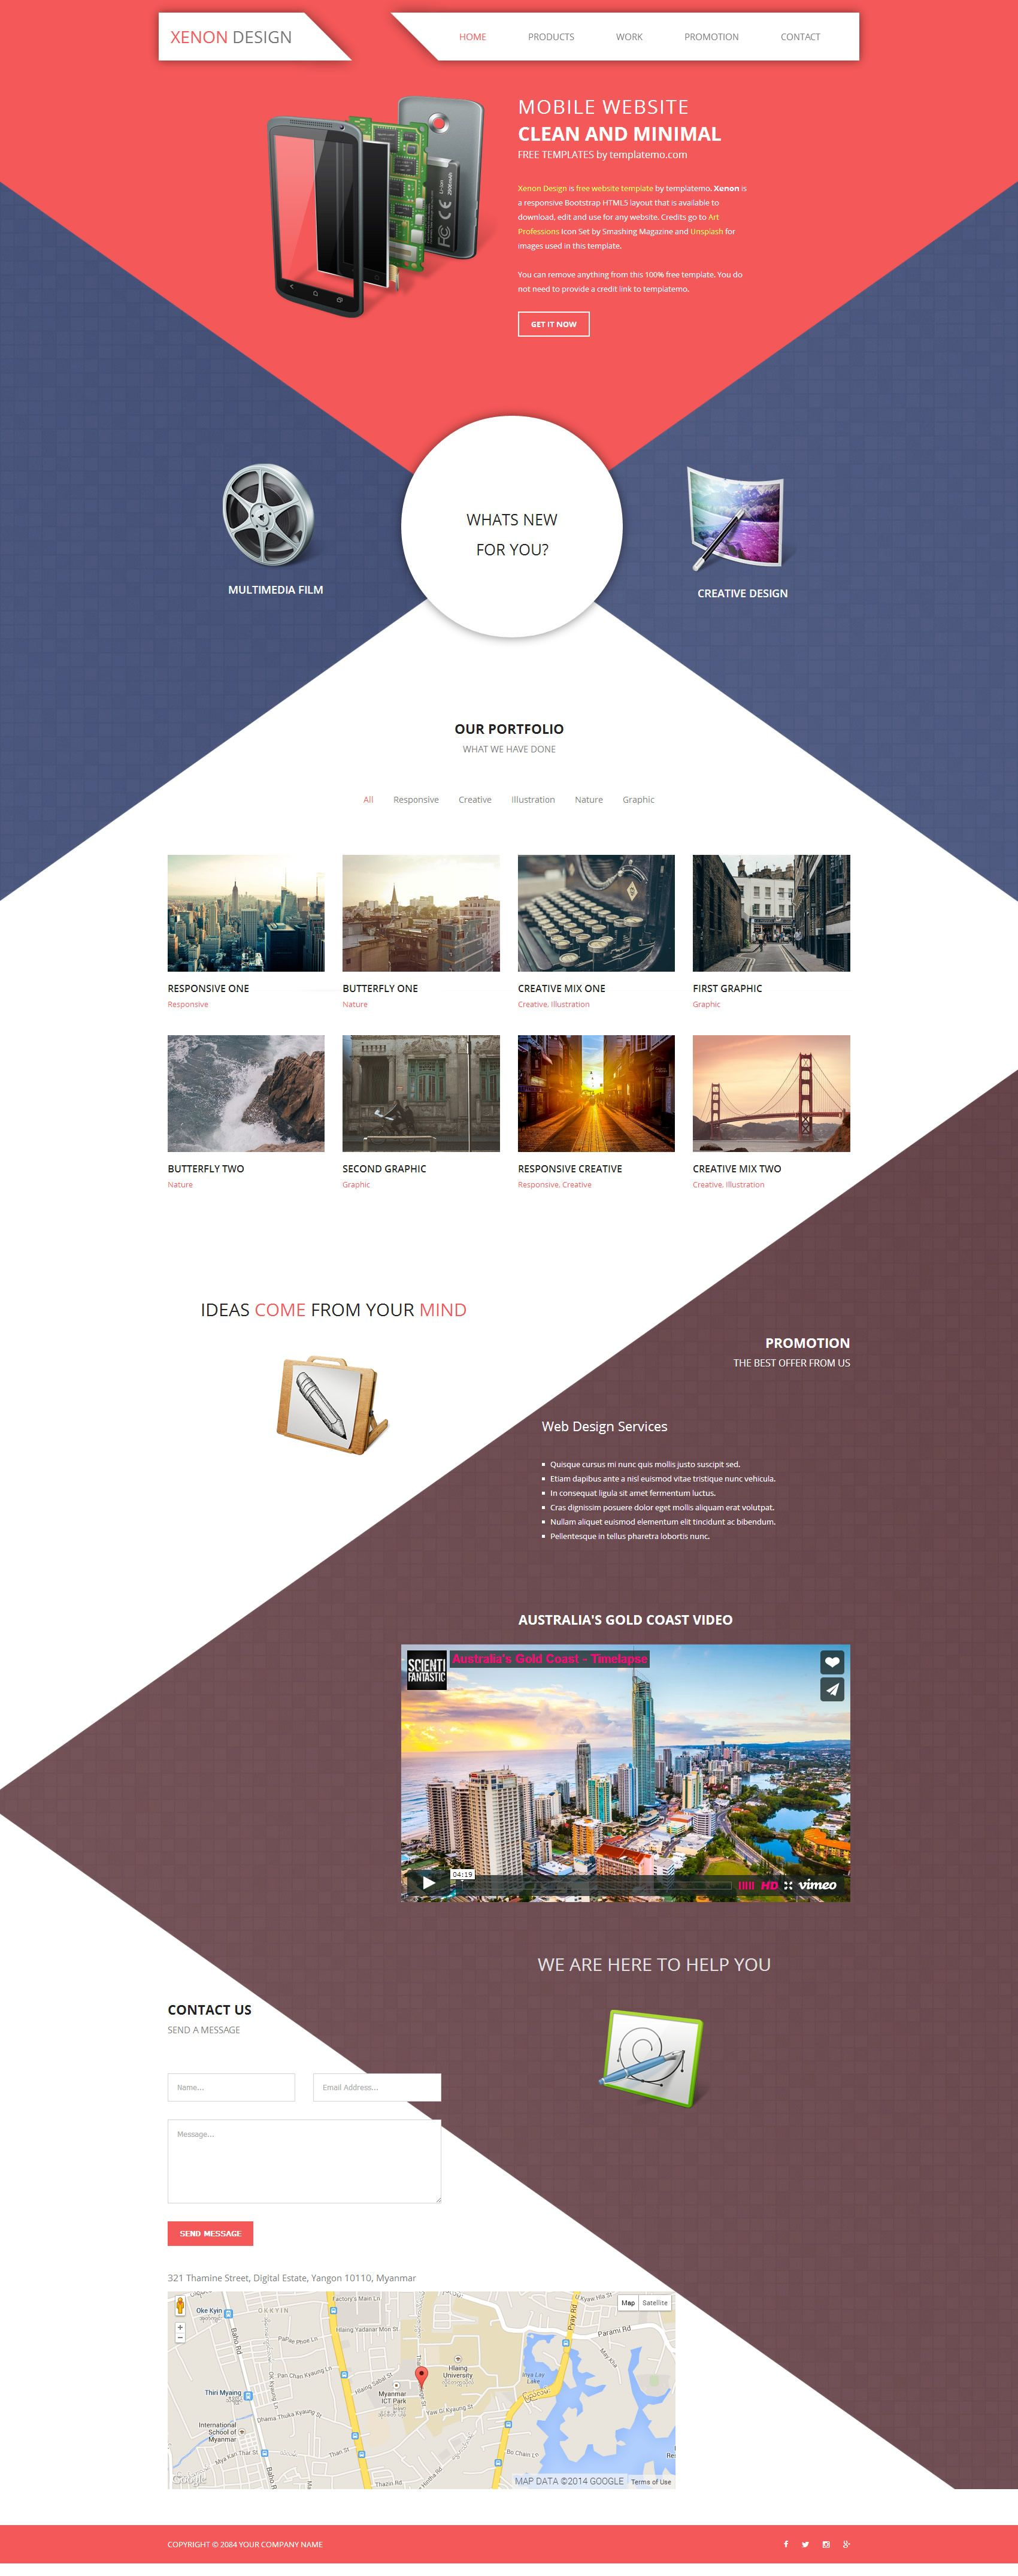 Xenon Is Free Html5 Responsive Website Template Attractive Diagonal Shapes Red Blue Brown An Web Layout Design Responsive Website Template Website Template